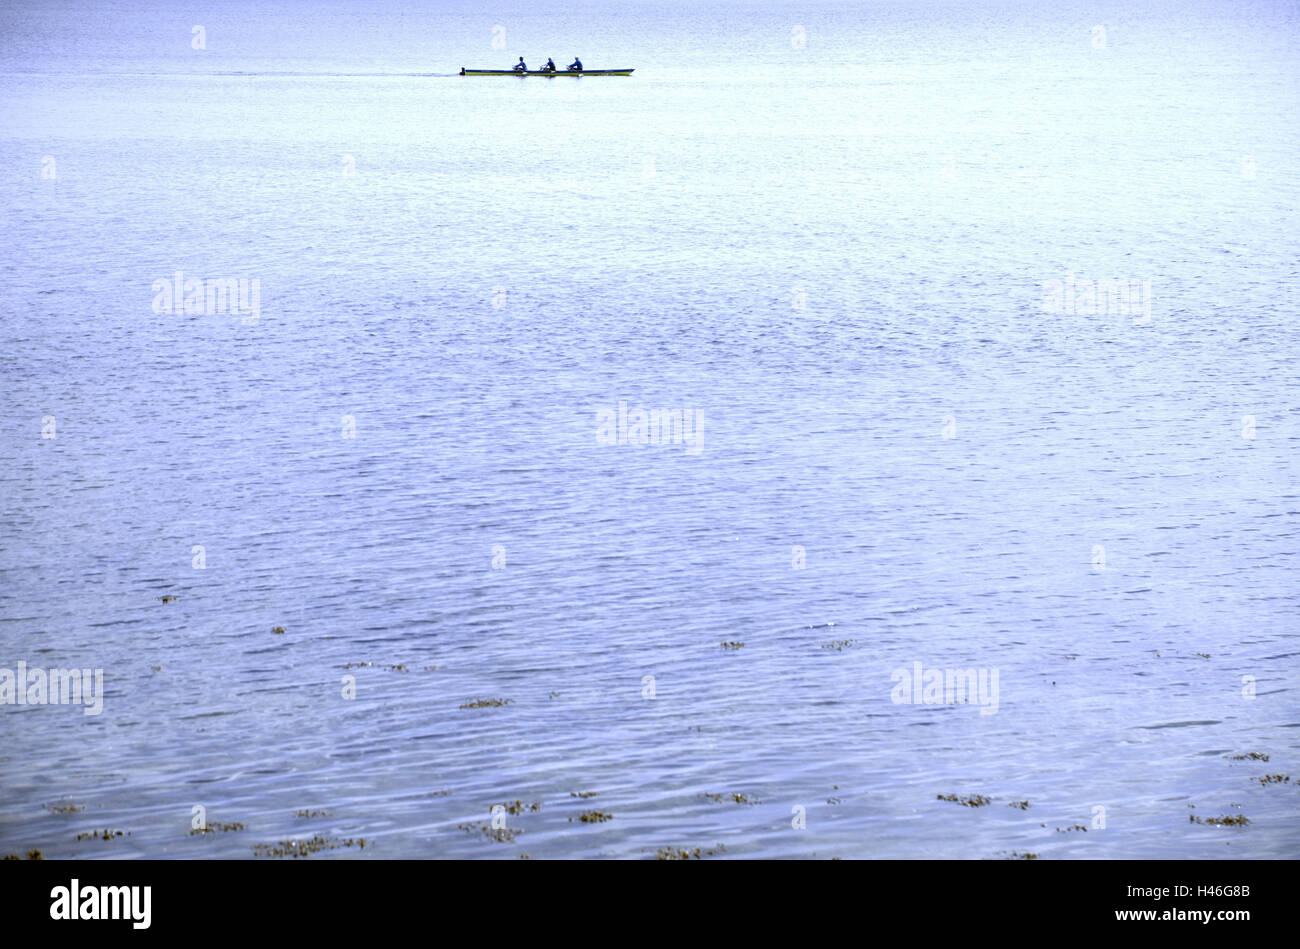 The Baltic Sea, rowing boat, outdoors, watersports, water, sea, rowing, boat, firth, Germany, Europe, Schleswig - Stock Image